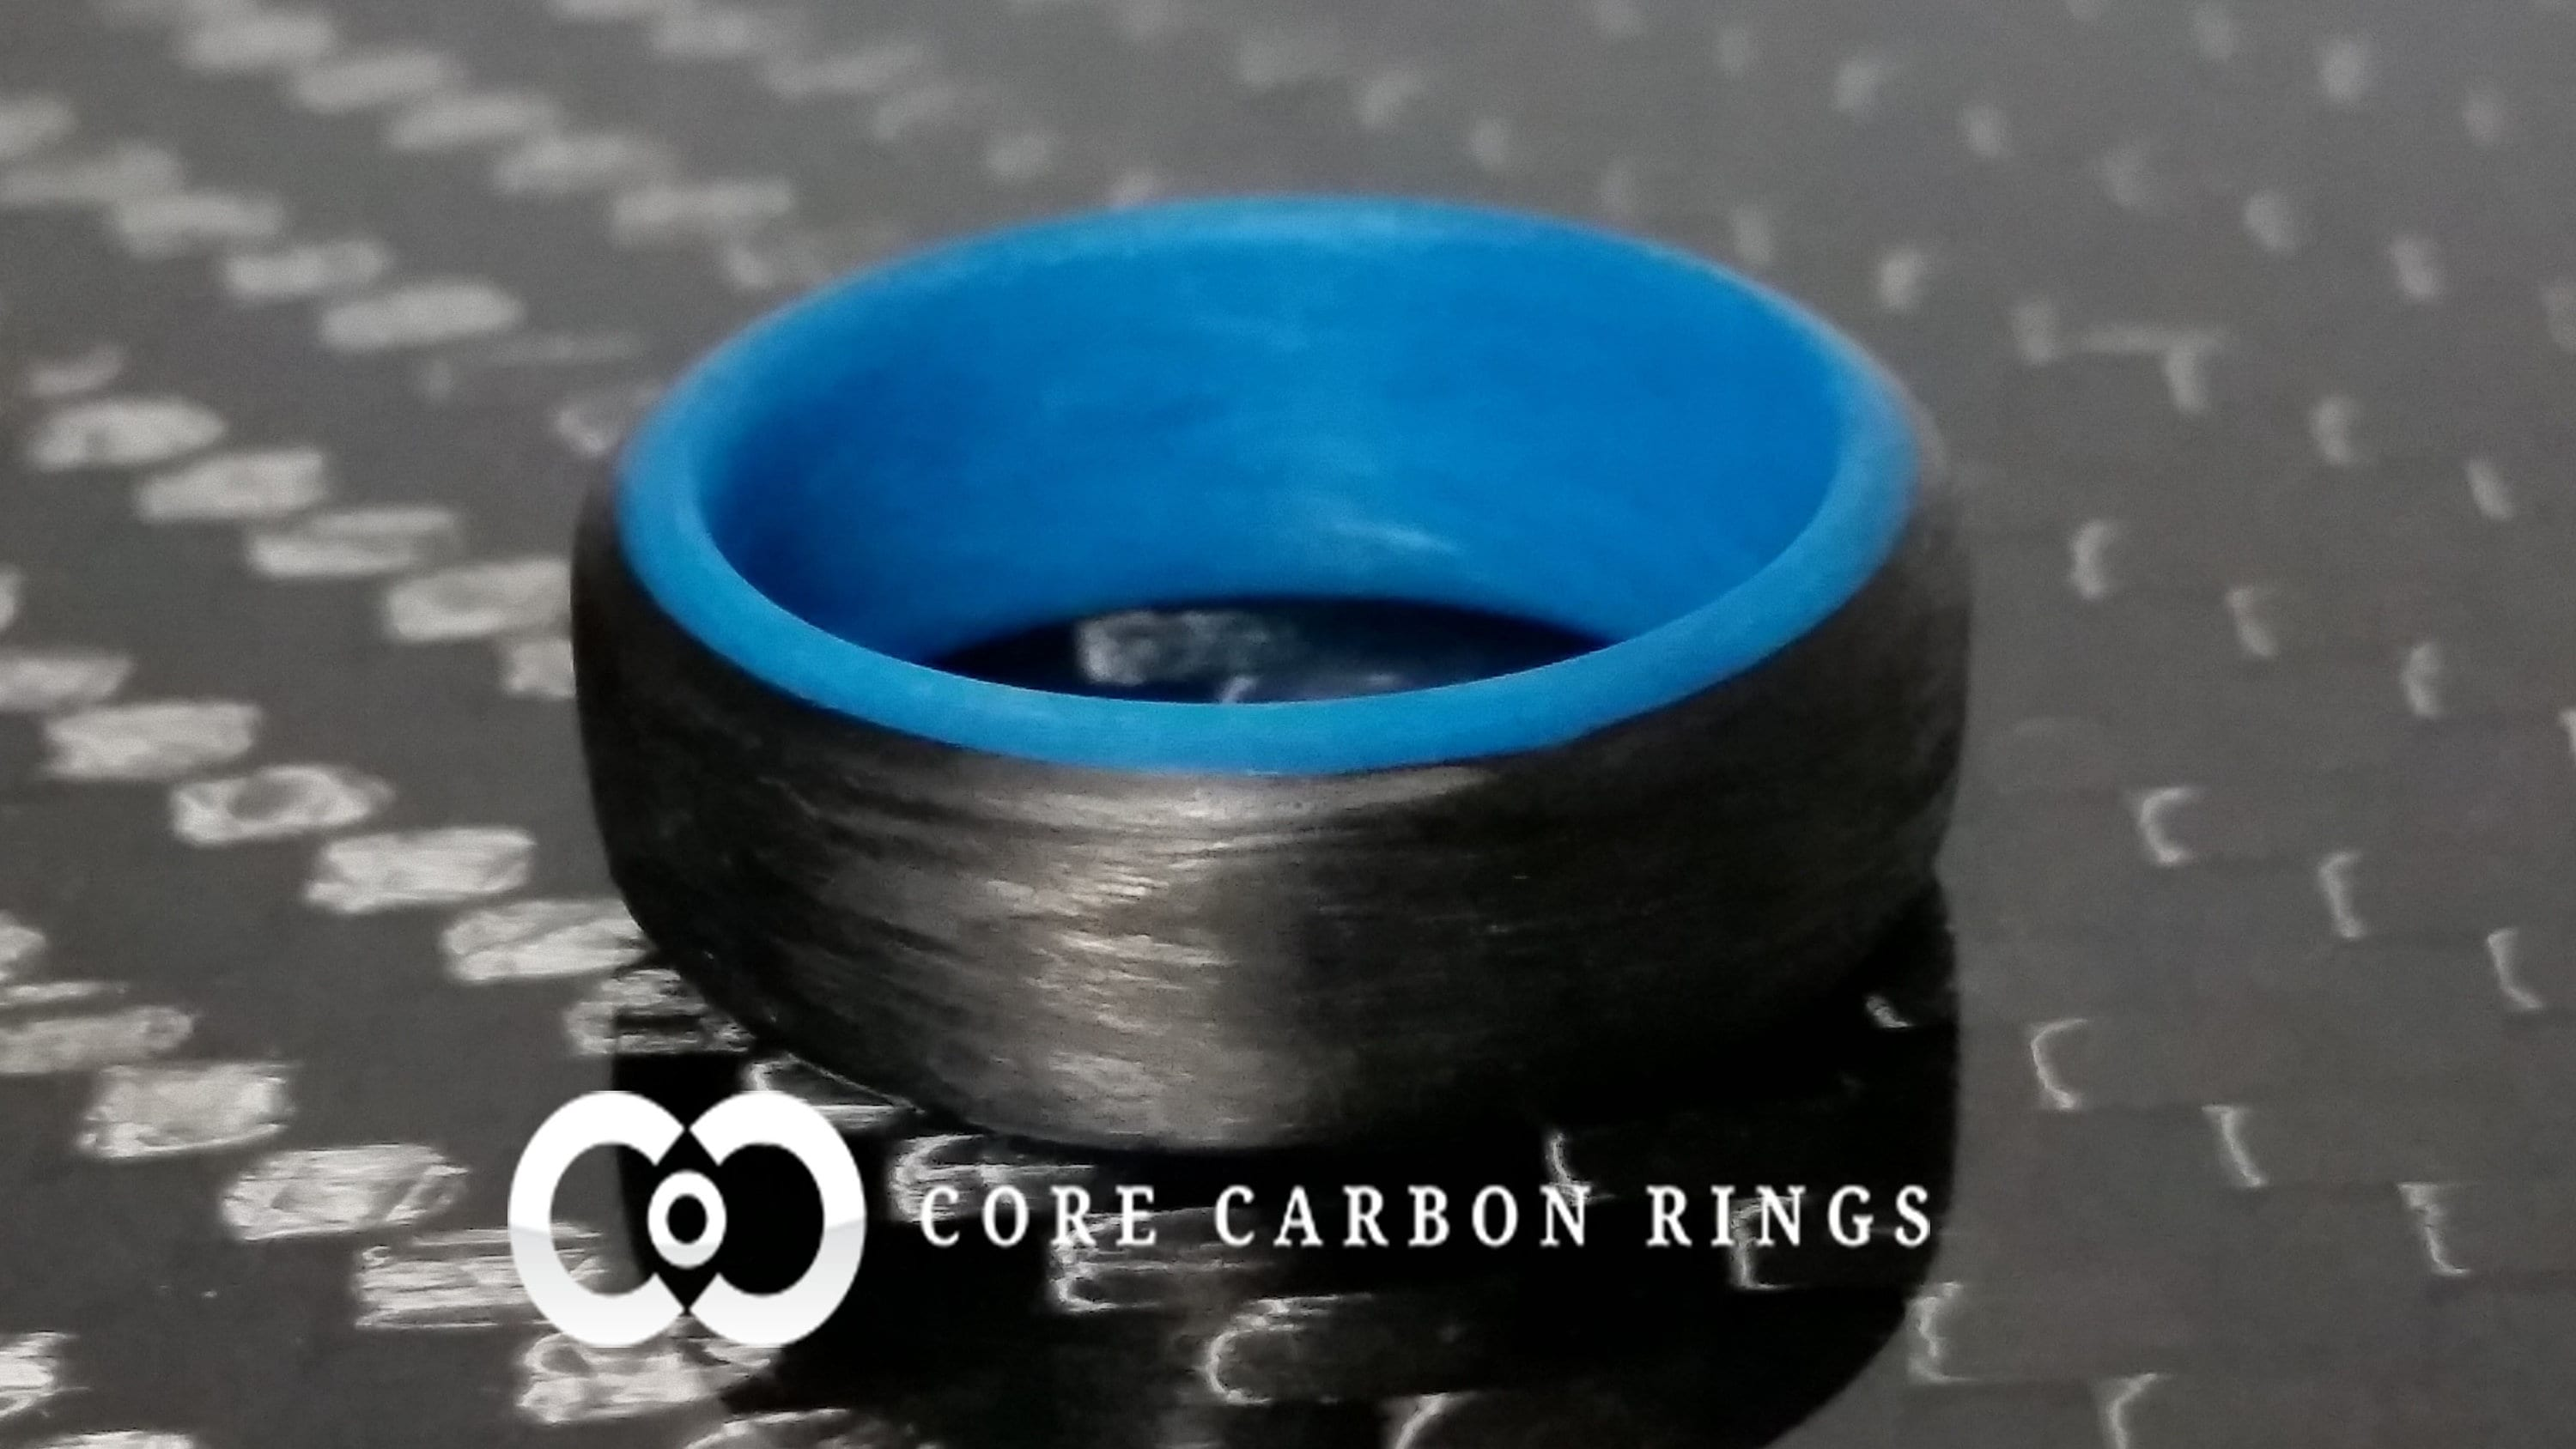 carbon projects bright s the kickstarter dallinanilocarbon by rings first world dallin triton original glow ultra lume fiber